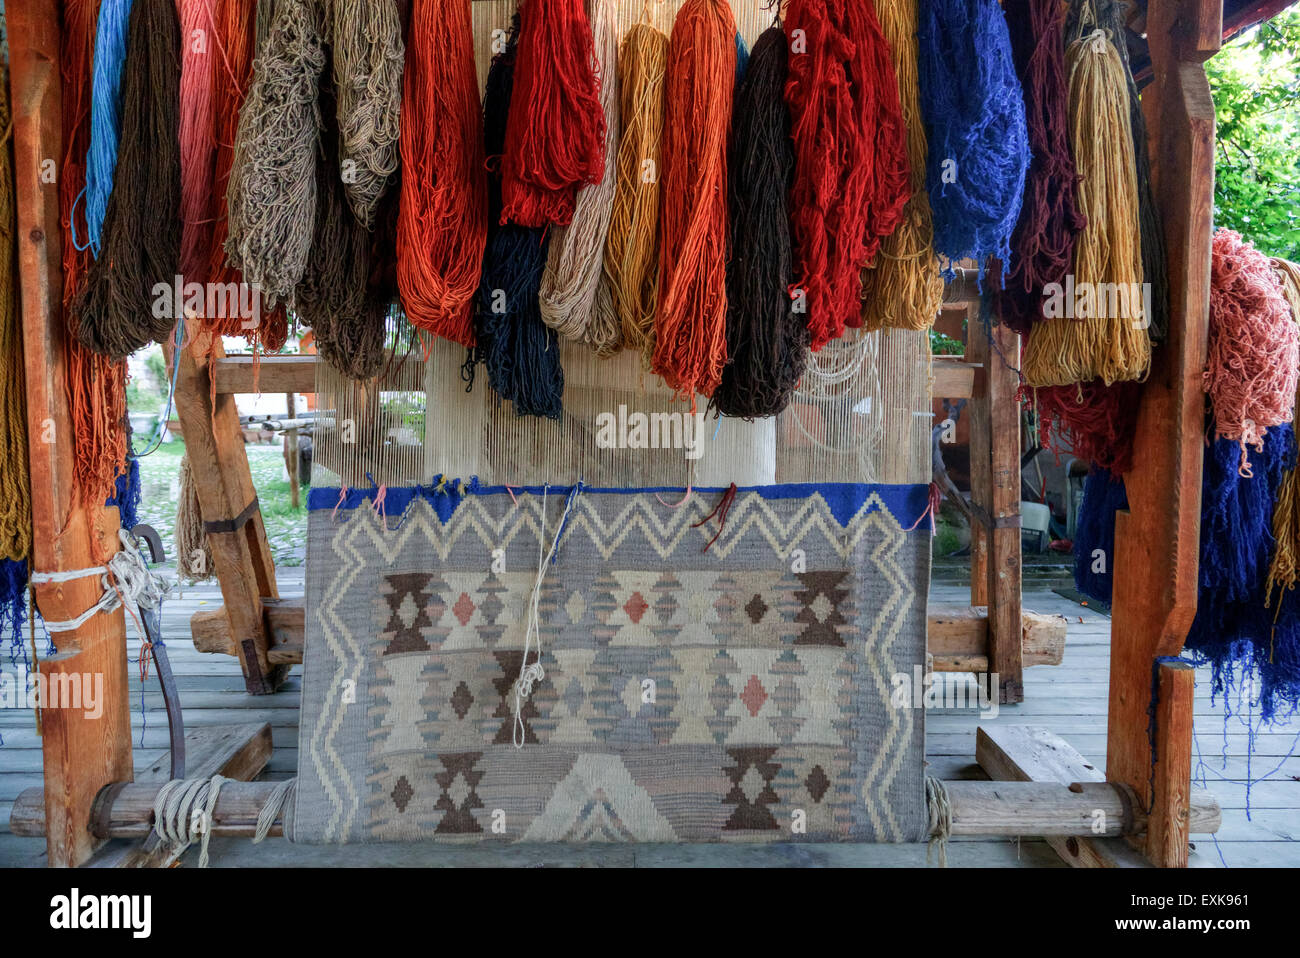 weaving loom for Turkish carpets - Stock Image